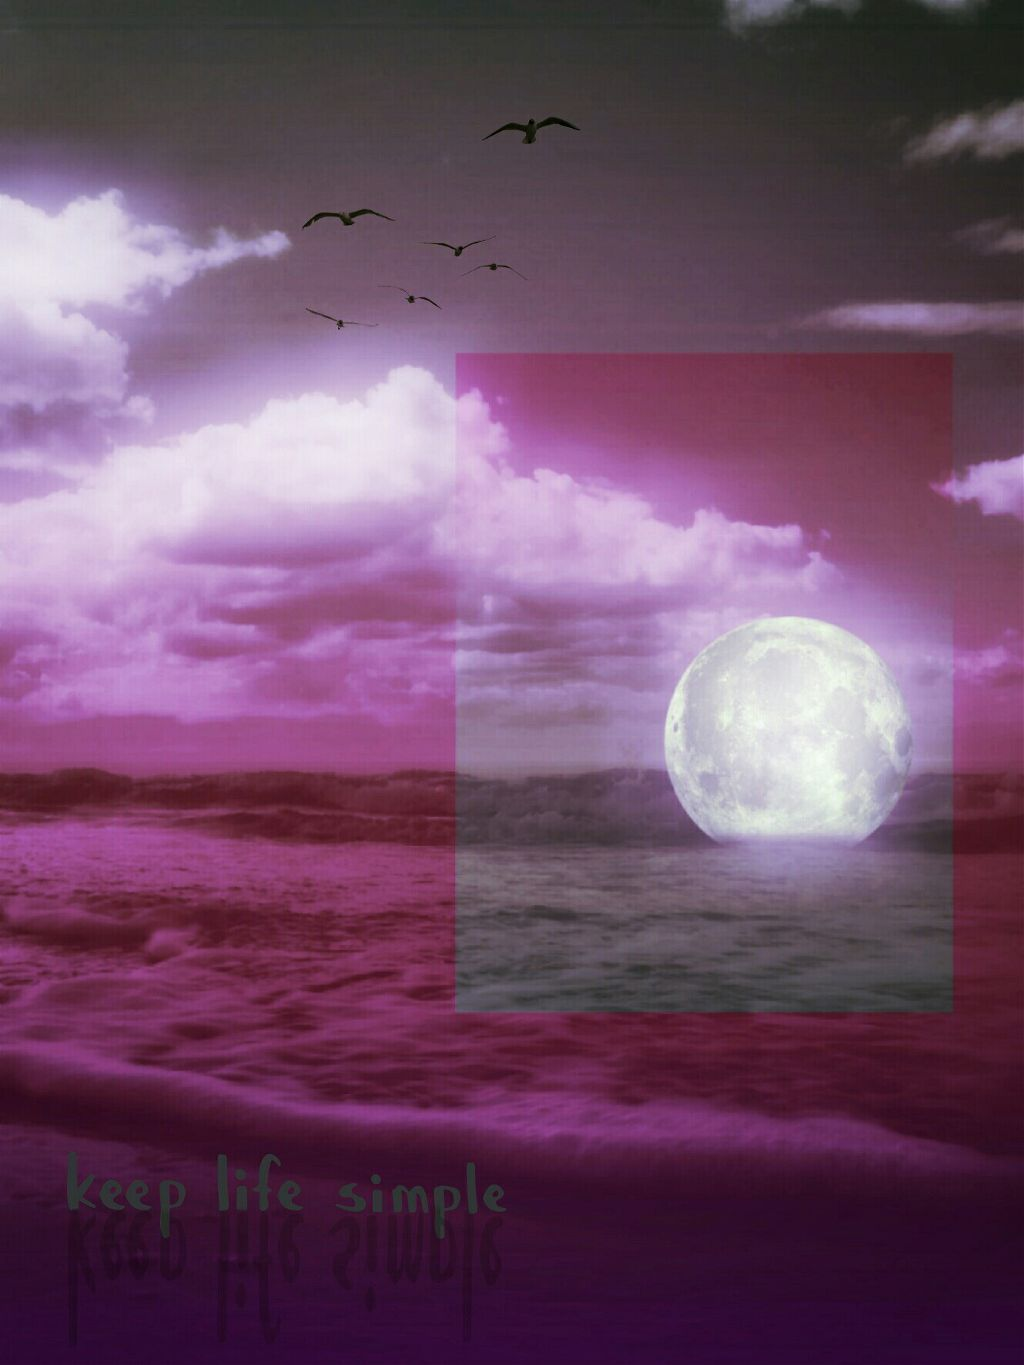 Nice evening PA Image from @portraitsbynette    #madewithpicsart #quotesandsayings #pink #nature #moon #photomanipulation #beach #edited #editstepbystep #myedit #gradienteffect #stickers #mask #colorful